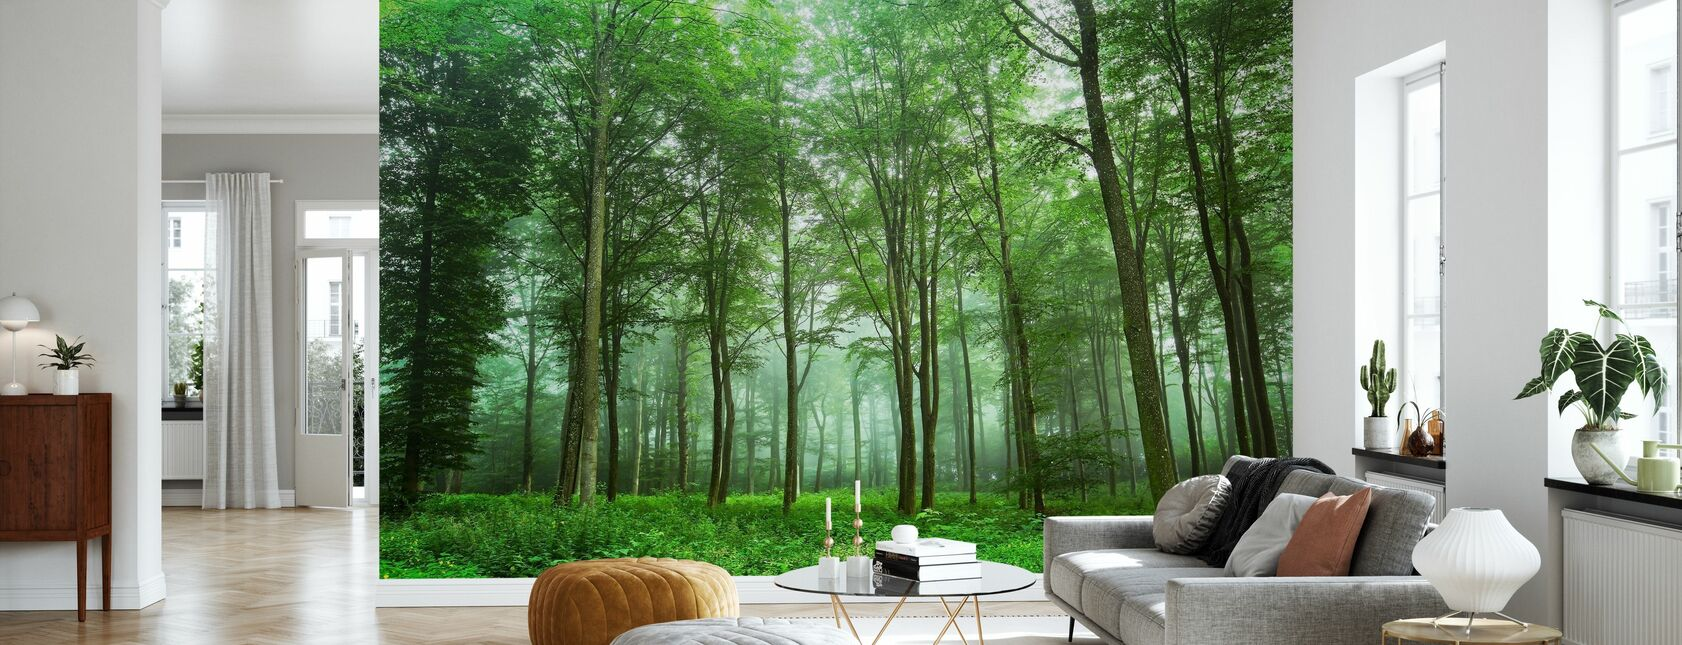 Forest View - Wallpaper - Living Room